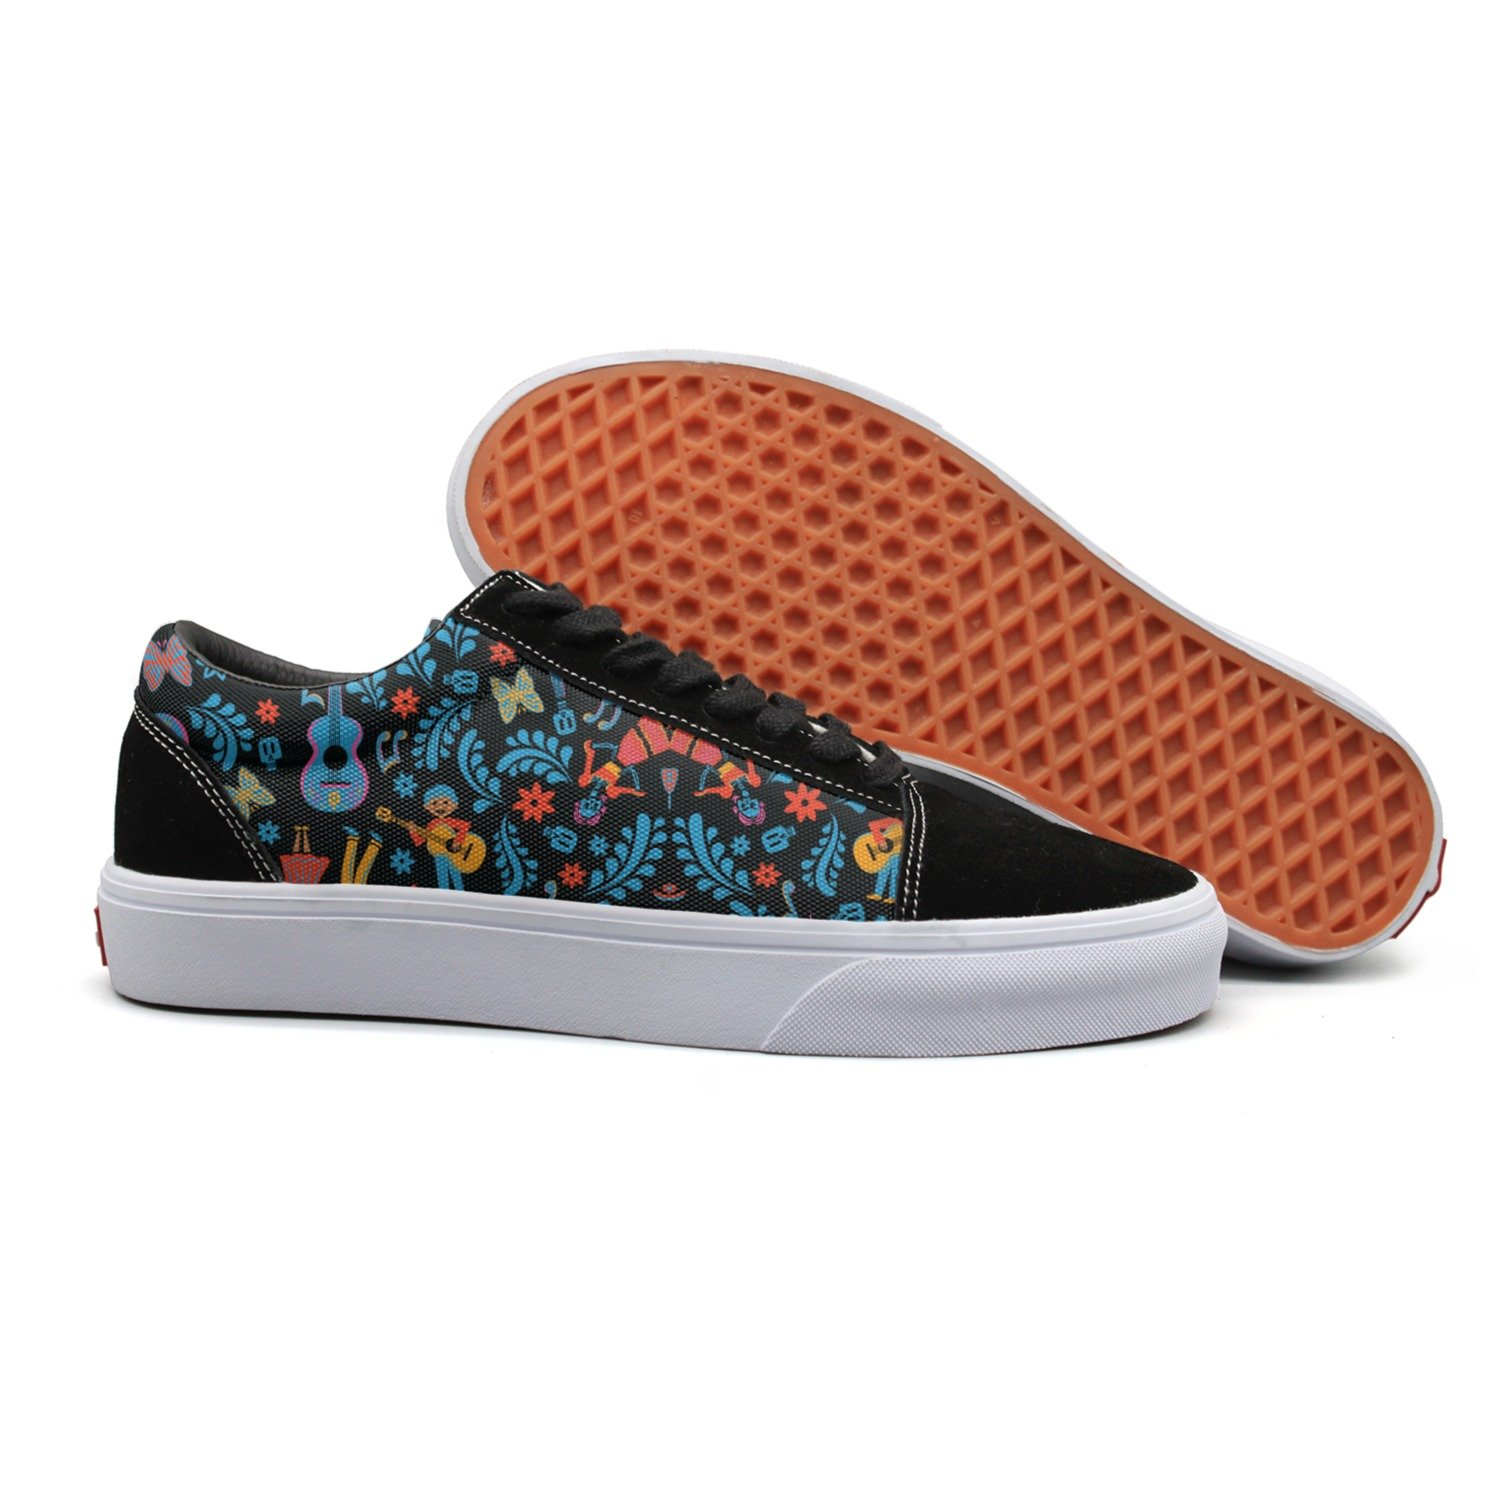 KKLDFD Free Music Download Music Notes Music Stores Good Music Men Anti-fur Low Top Sneakers